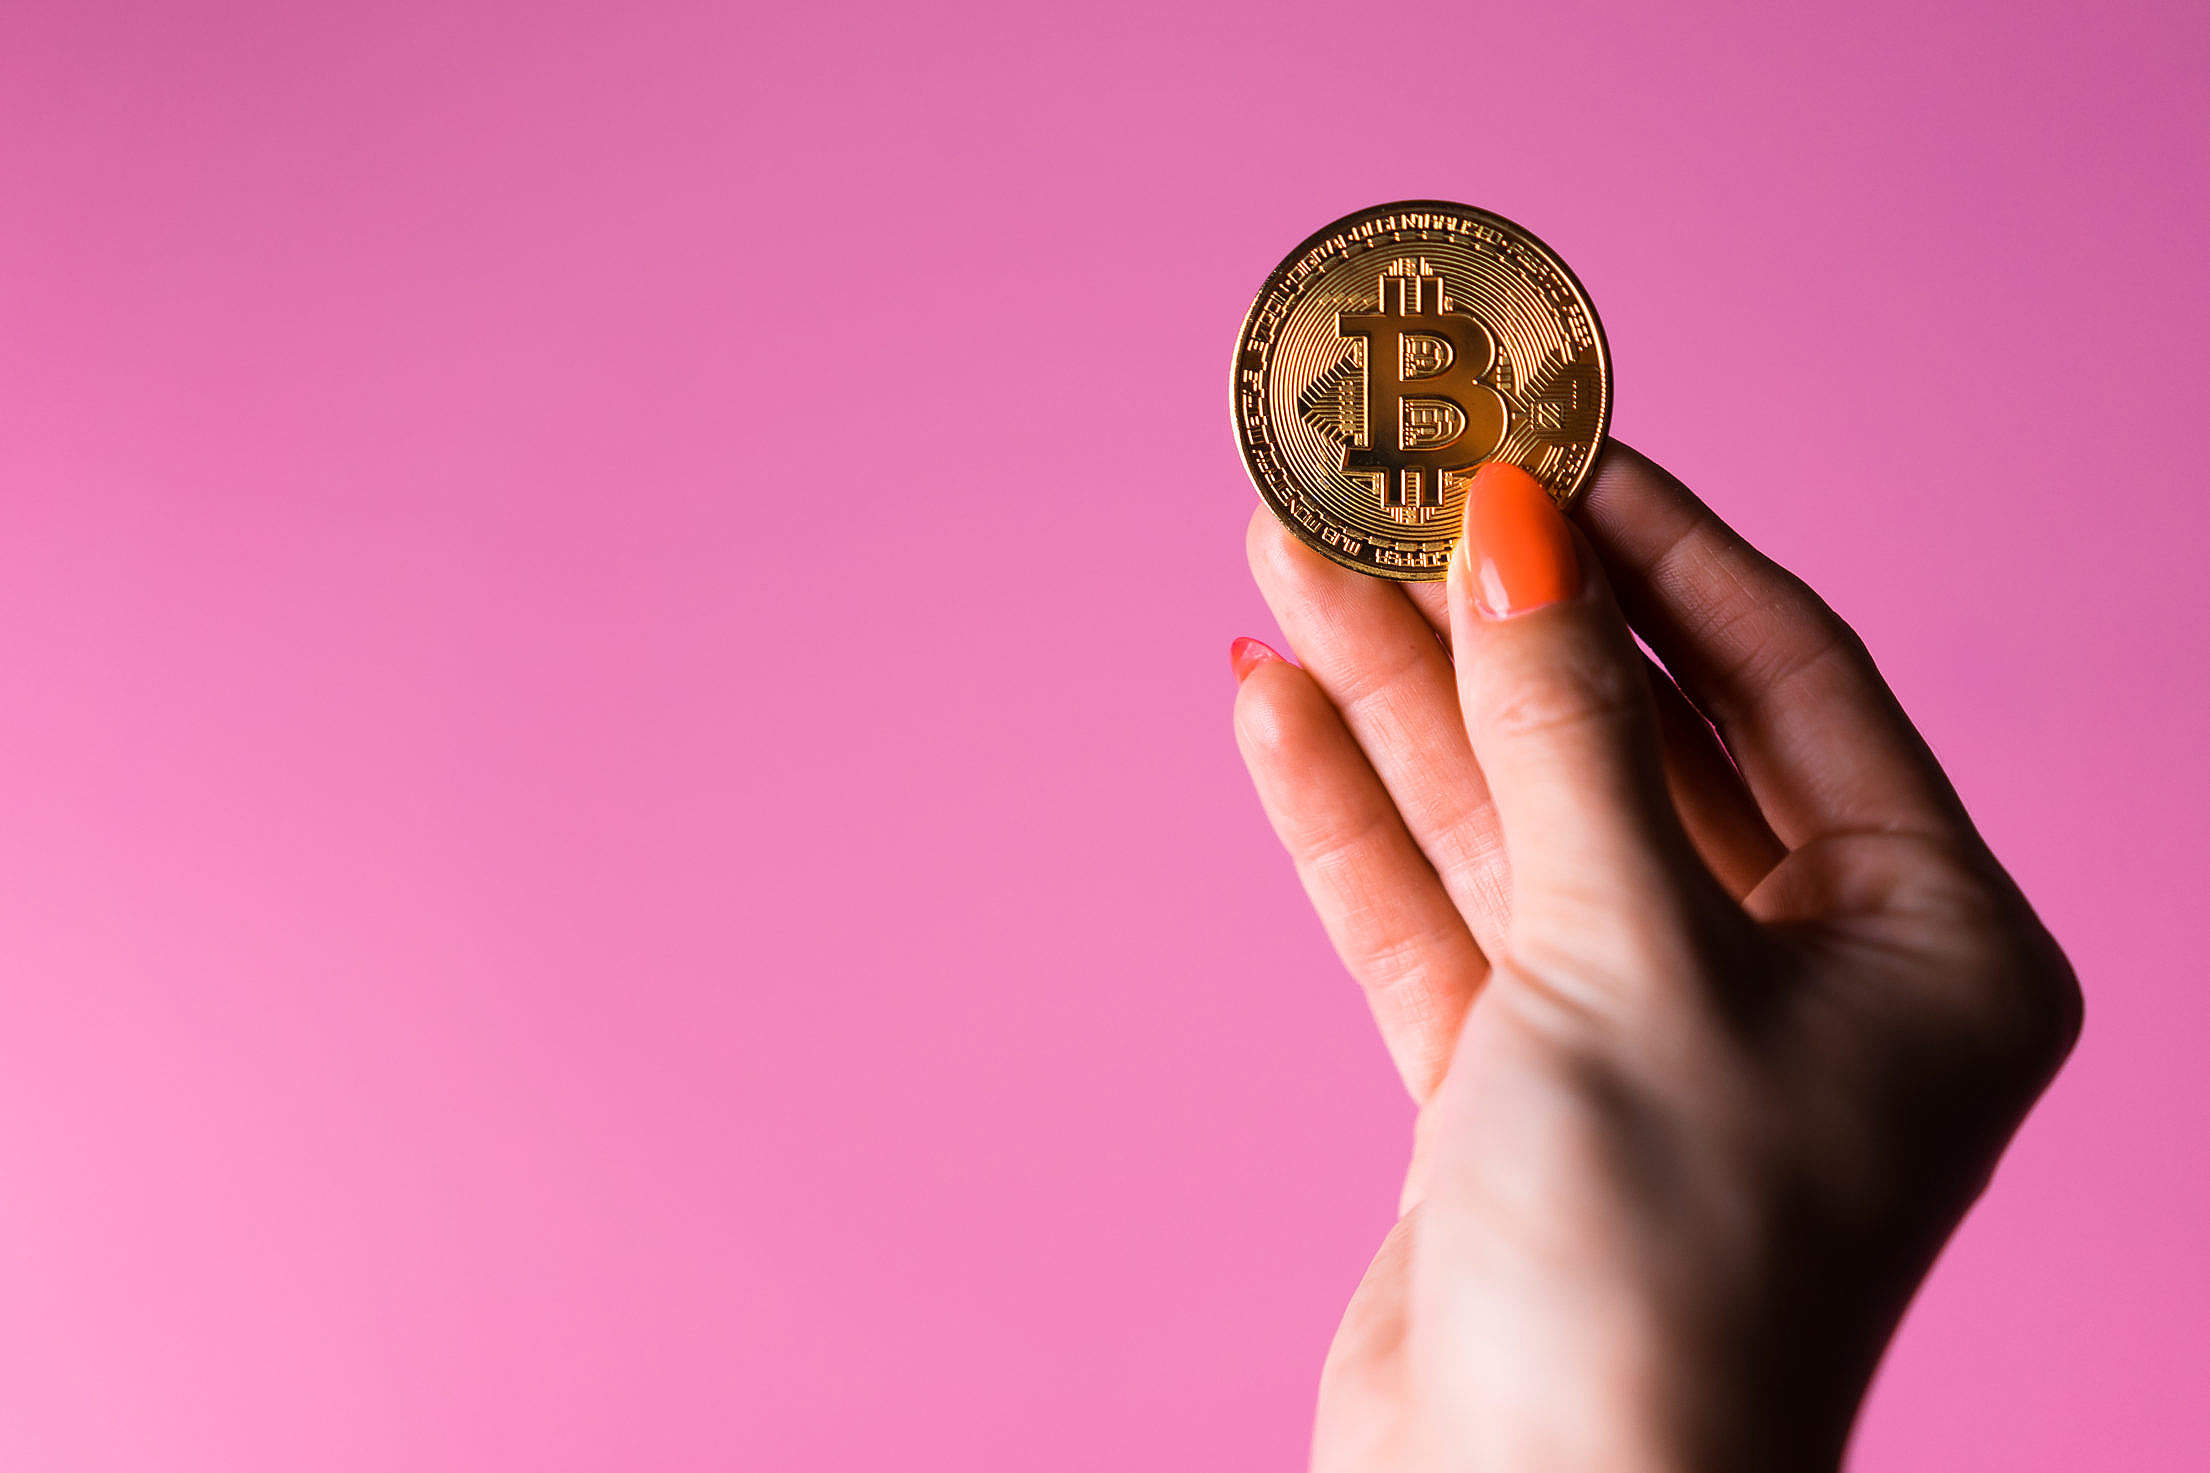 Woman's Hand with a Glowing Gold Bitcoin on a Pink Background Free Stock Photo